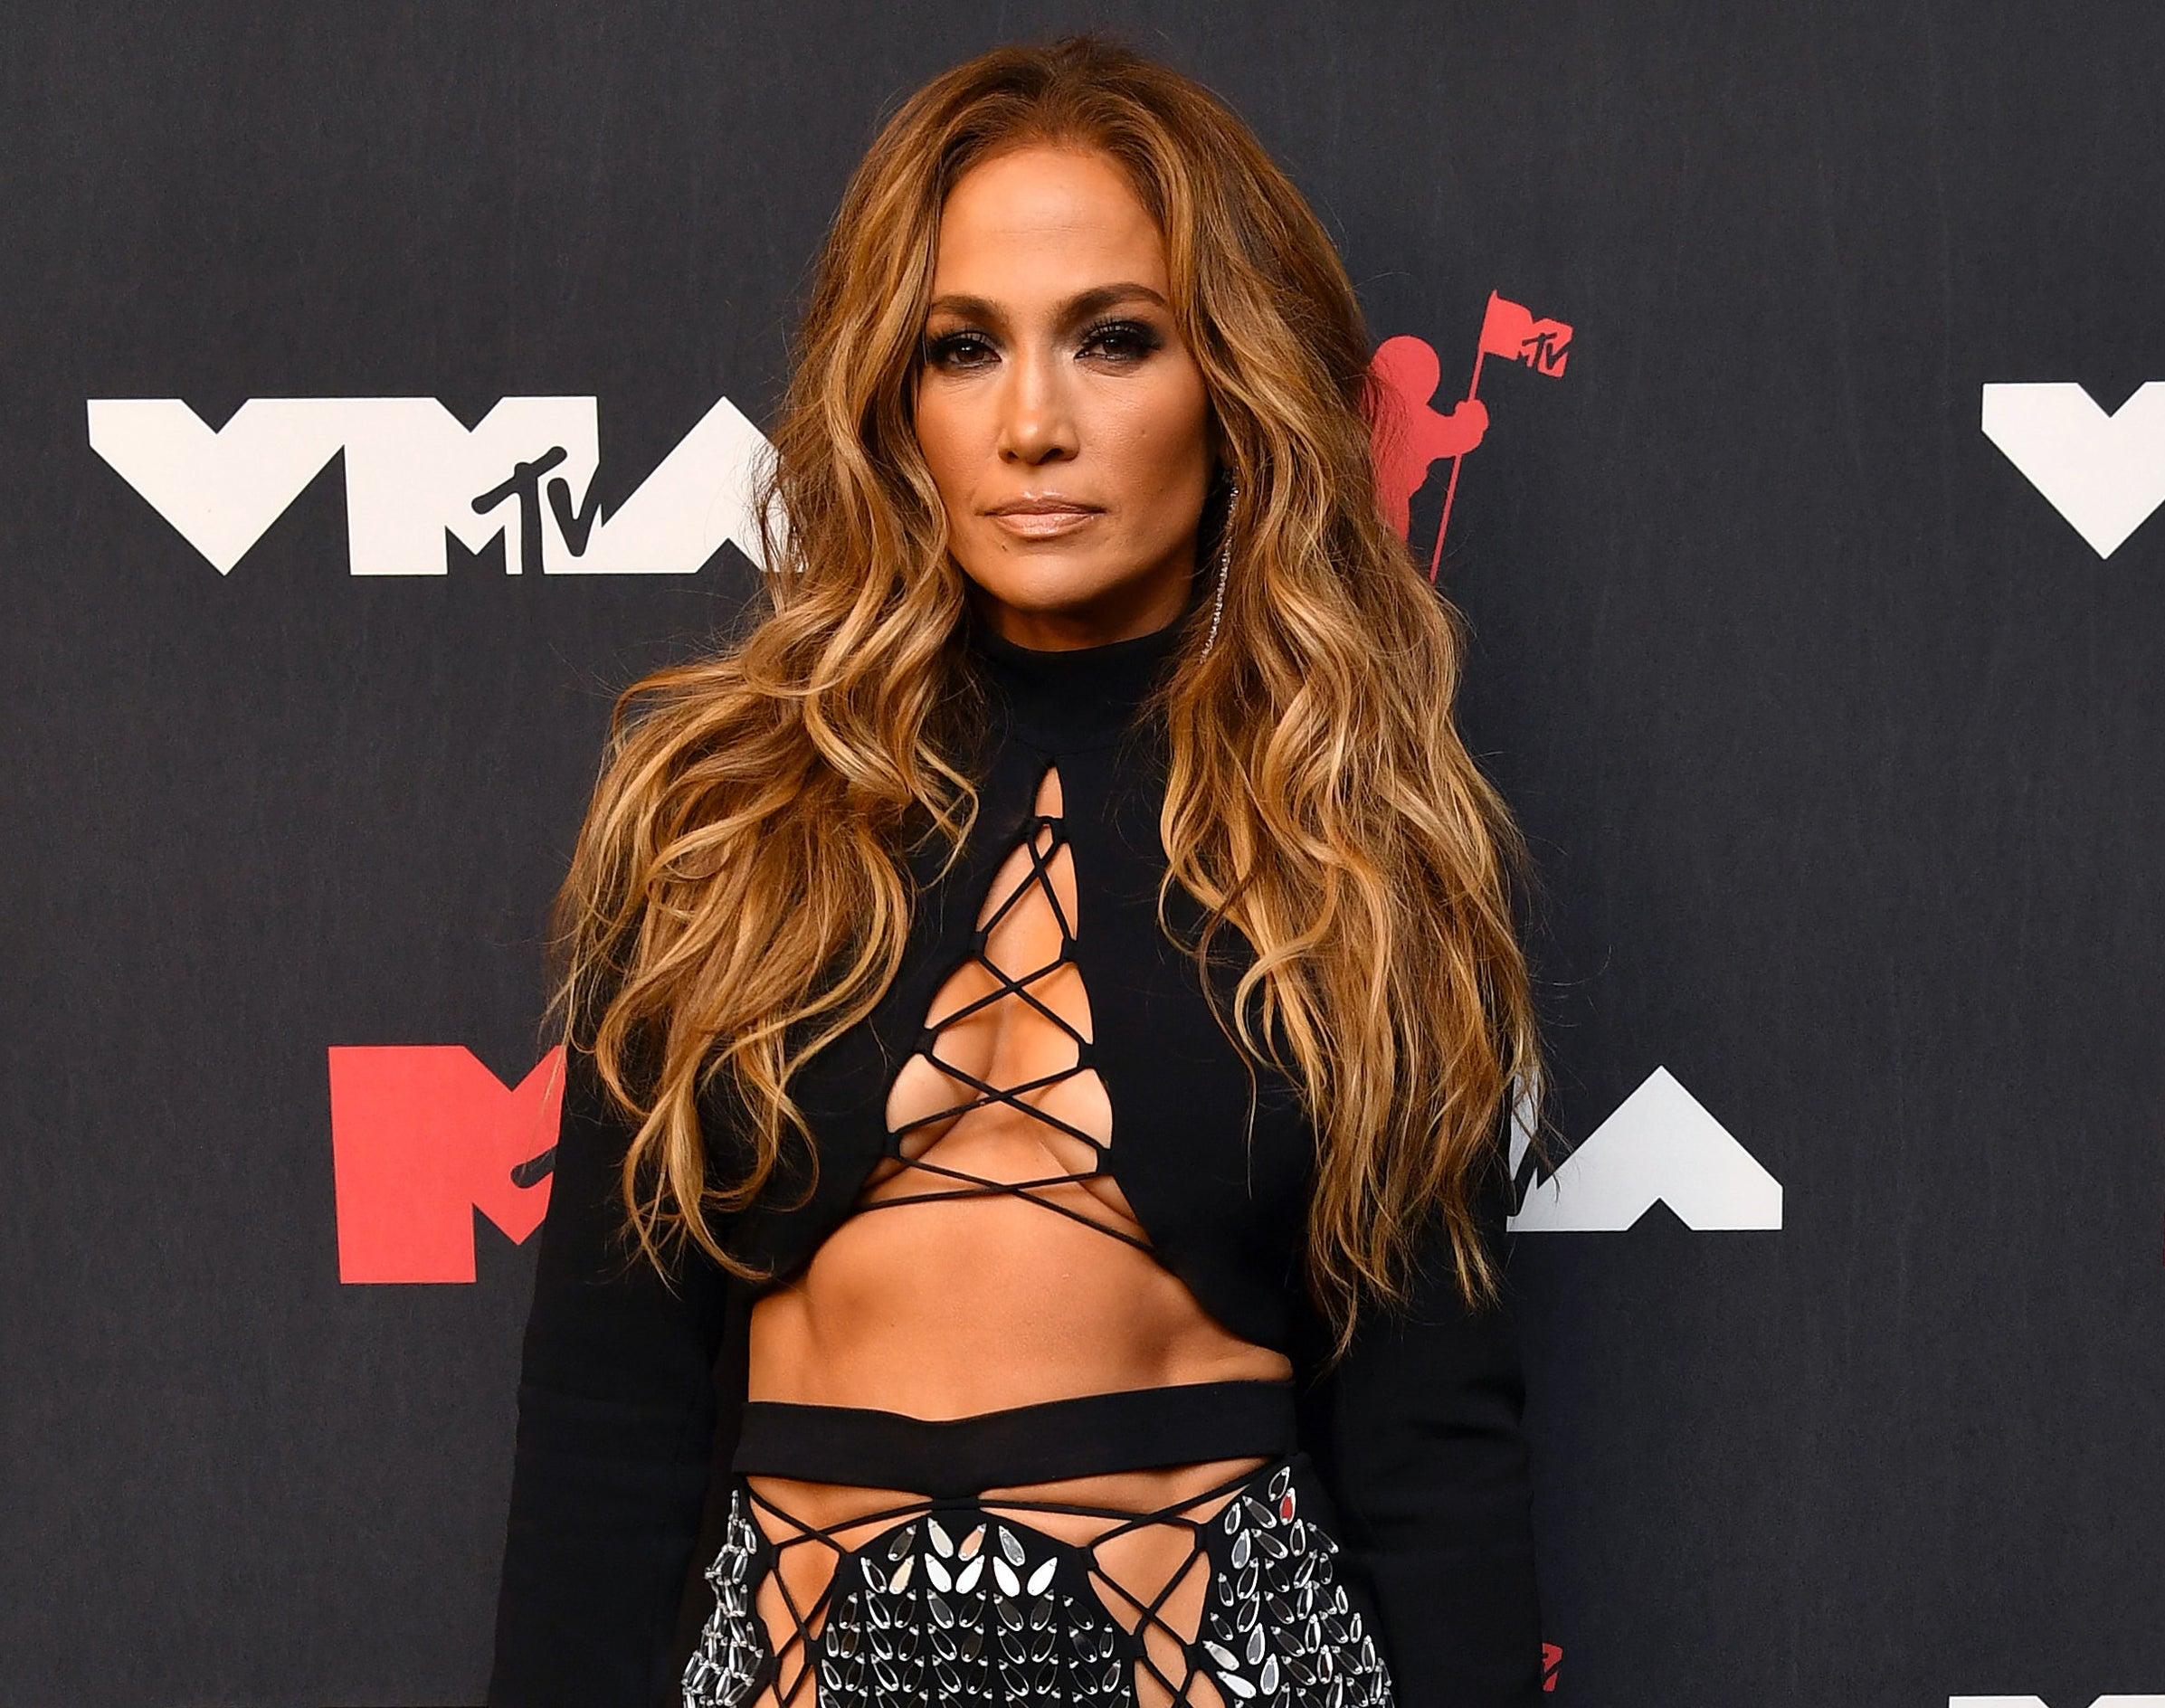 Jennifer looks serious in a crop top with cut out strings in the middle